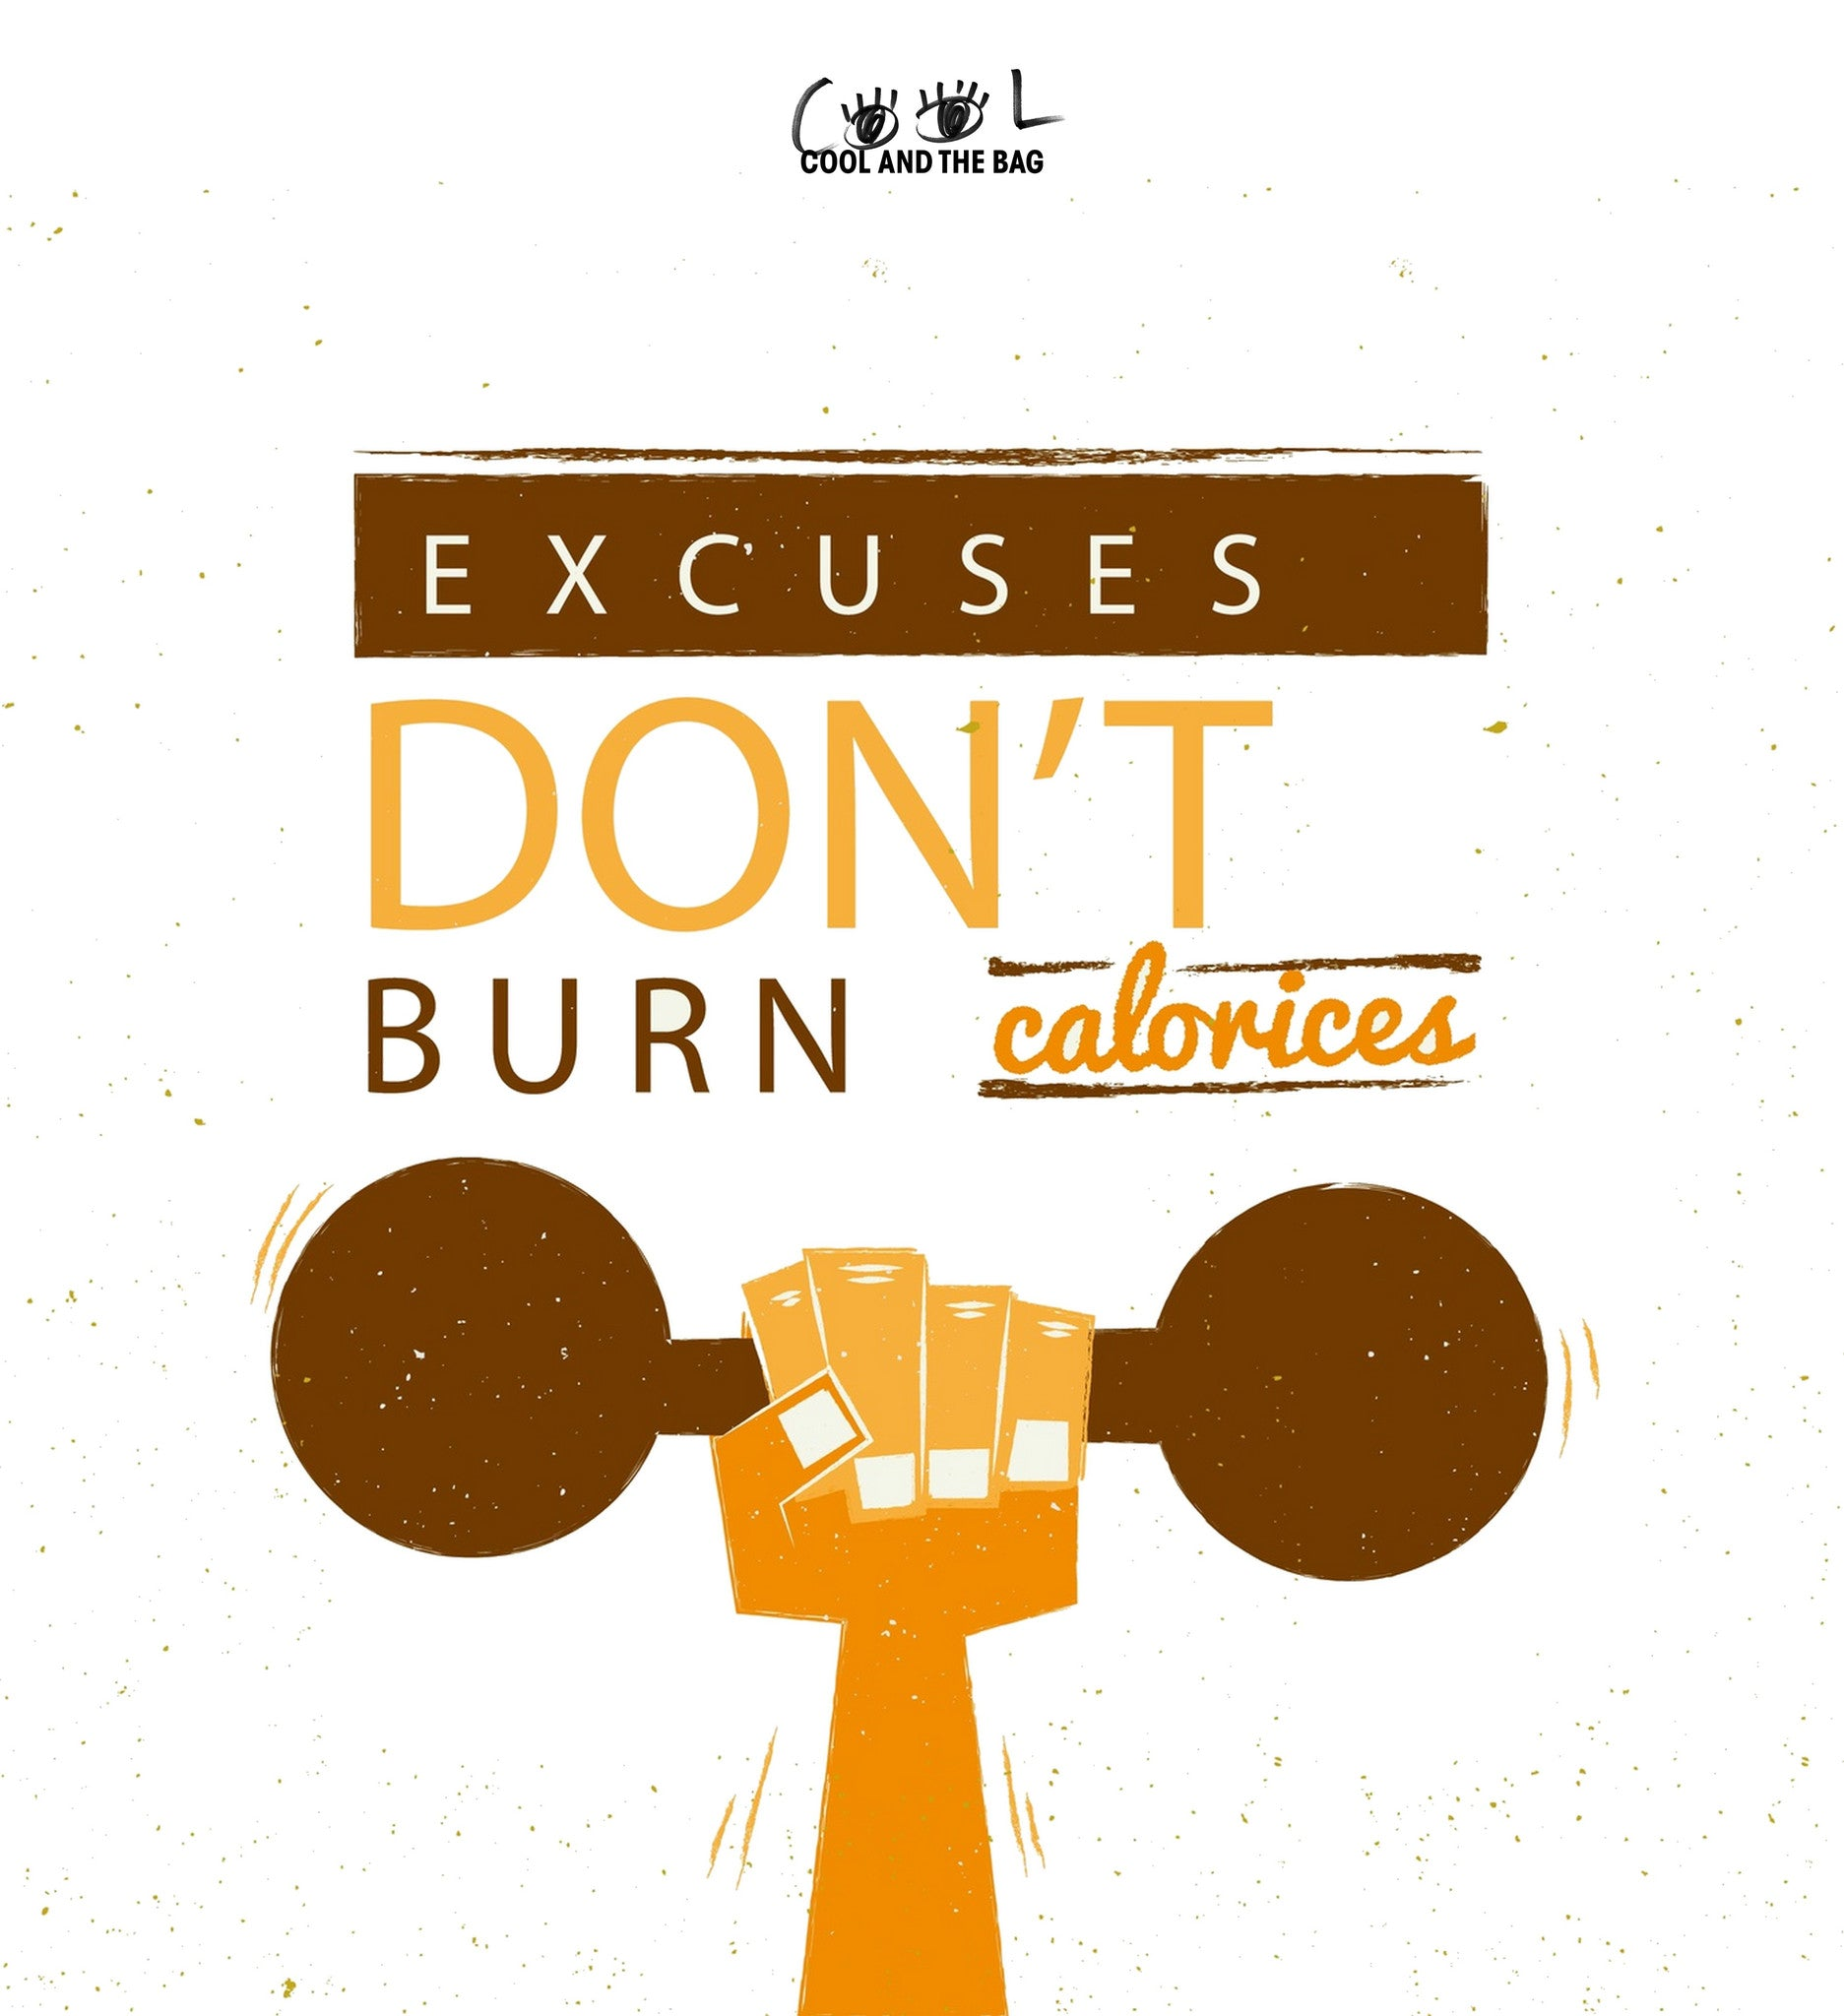 Excuses don't burn calorices